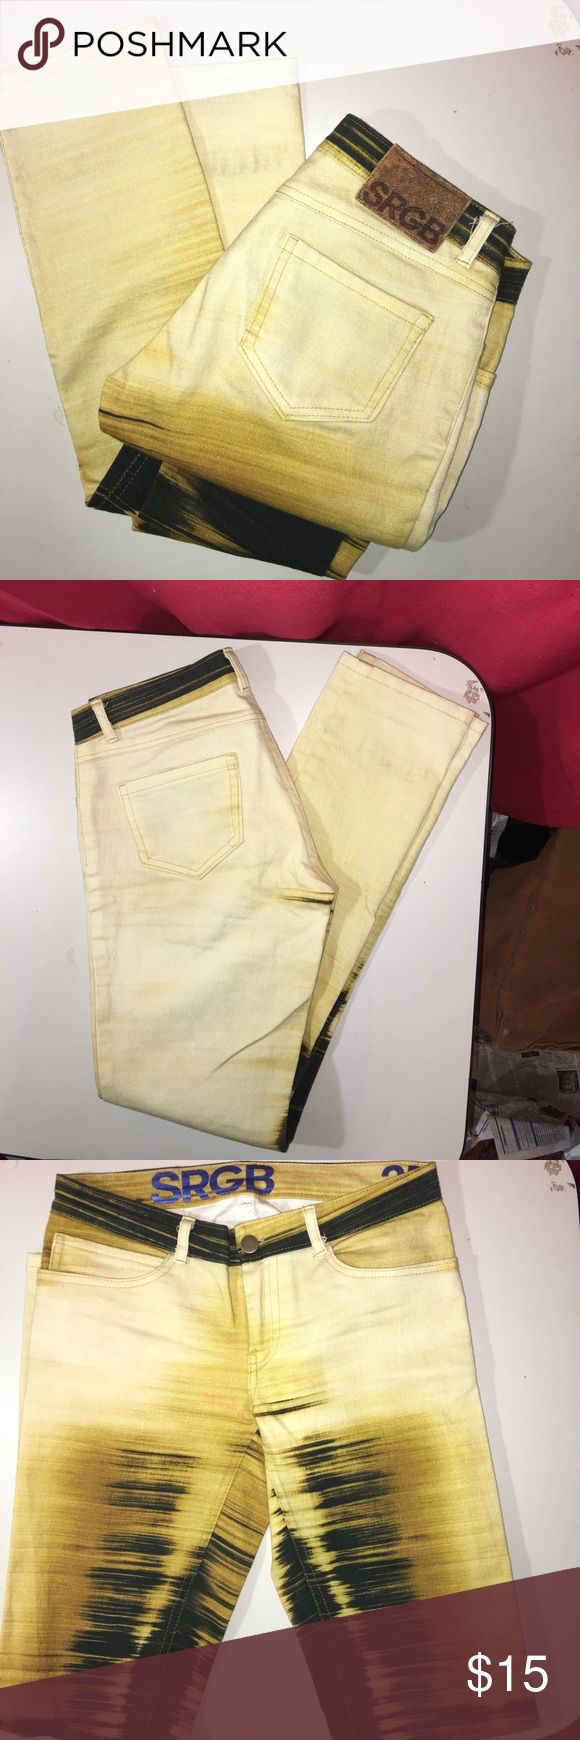 STGB  tie-dye jeans size 25 STGB  tie-dye jeans size 25 inseam 31. In very good used condition STGB Jeans Straight Leg